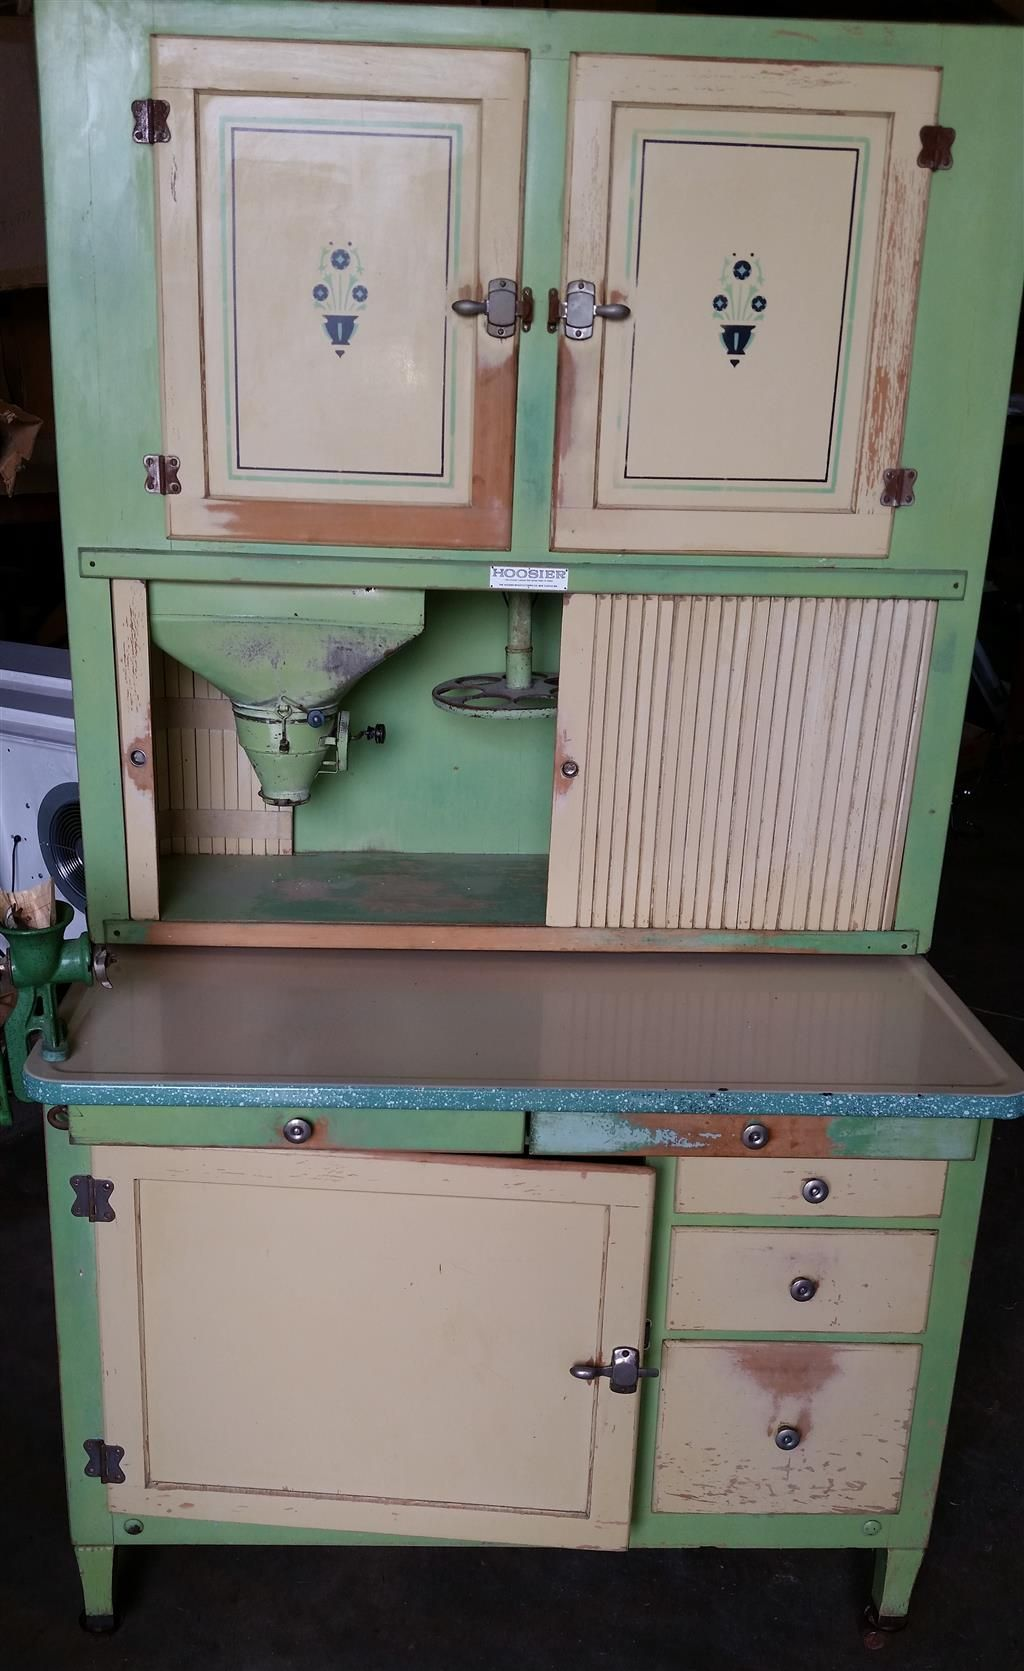 1 of 15 : 1930's Hoosier Beauty Cabinet w/ Sugar and Flour Bins, Sifter,  Spice Jars, Bread Box, and Grinder - 1 Of 15 : 1930's Hoosier Beauty Cabinet W/ Sugar And Flour Bins